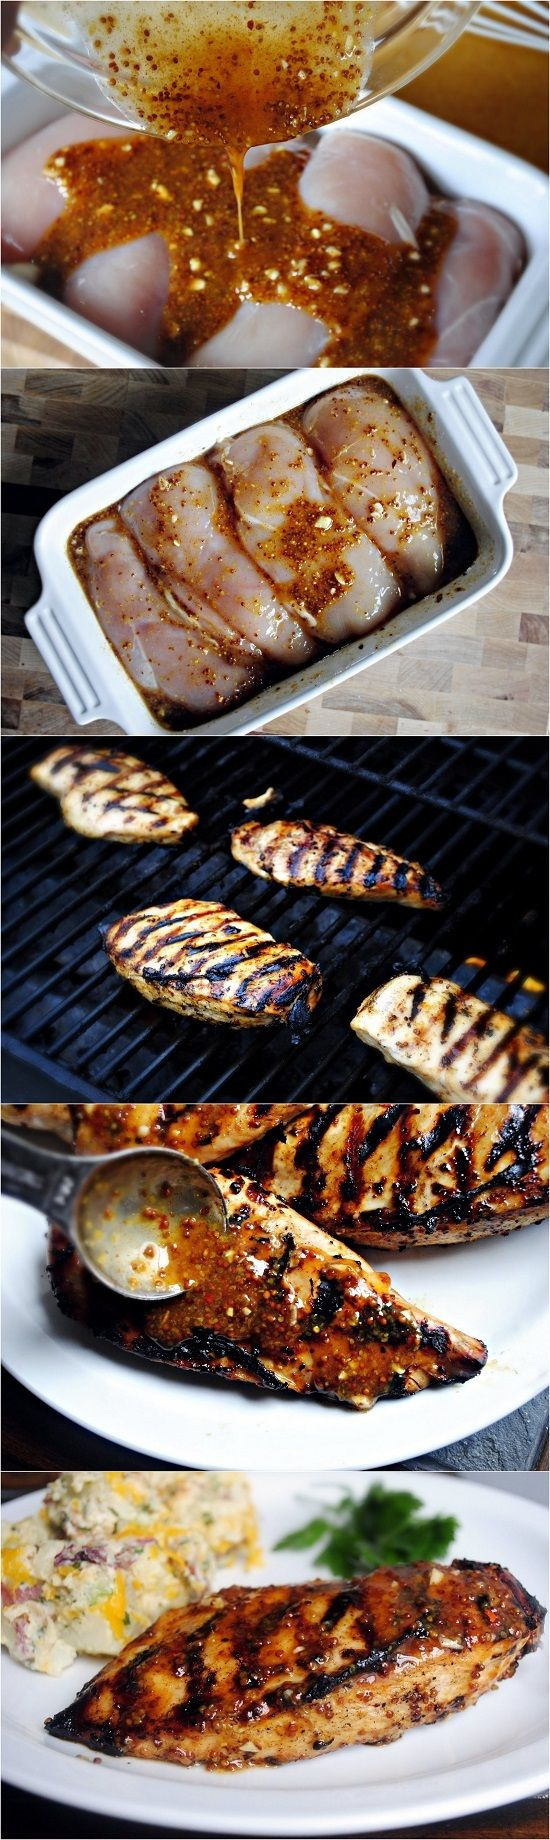 Grilled Honey Mustard Chicken | Dinner Choices | Pinterest | Honey ...